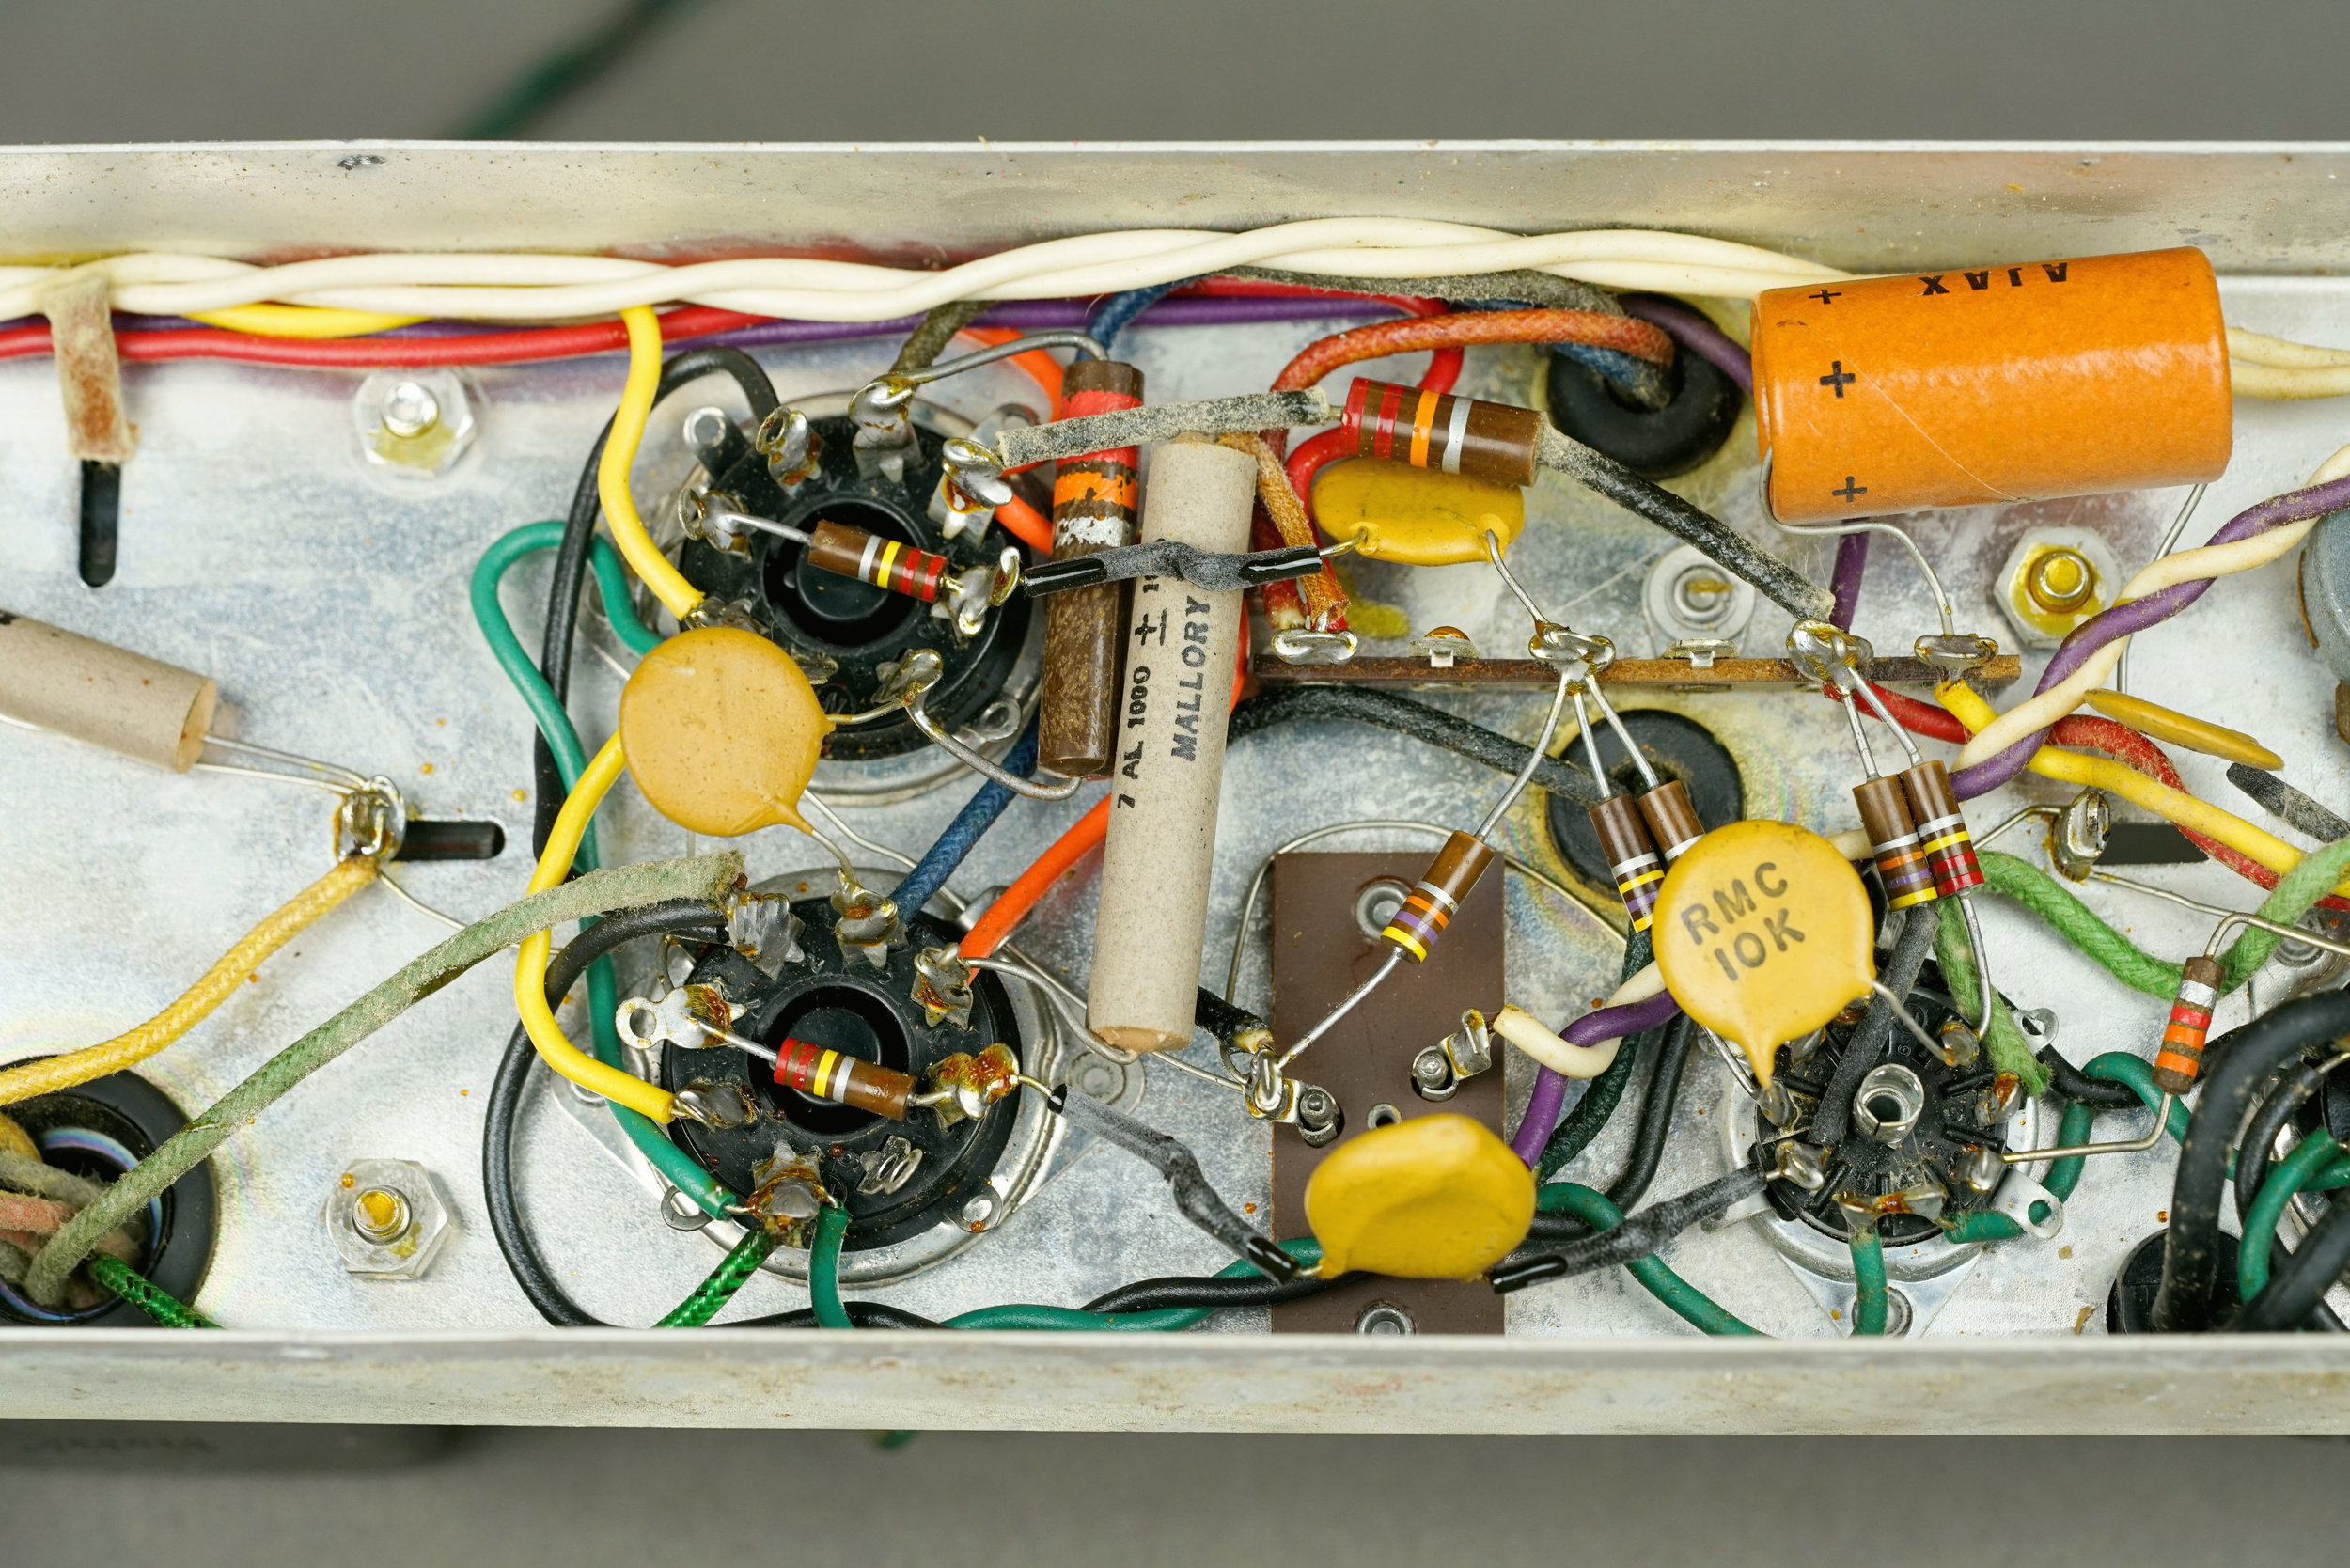 At some point, somebody else had re-wired the heaters in this Wurlitzer 112 amplifier. (They're the twisted green and black wires.) It's not perfect because there are still large loops around the tube sockets. This wiring could be improved if the twist were to continue all the way up to the sockets.